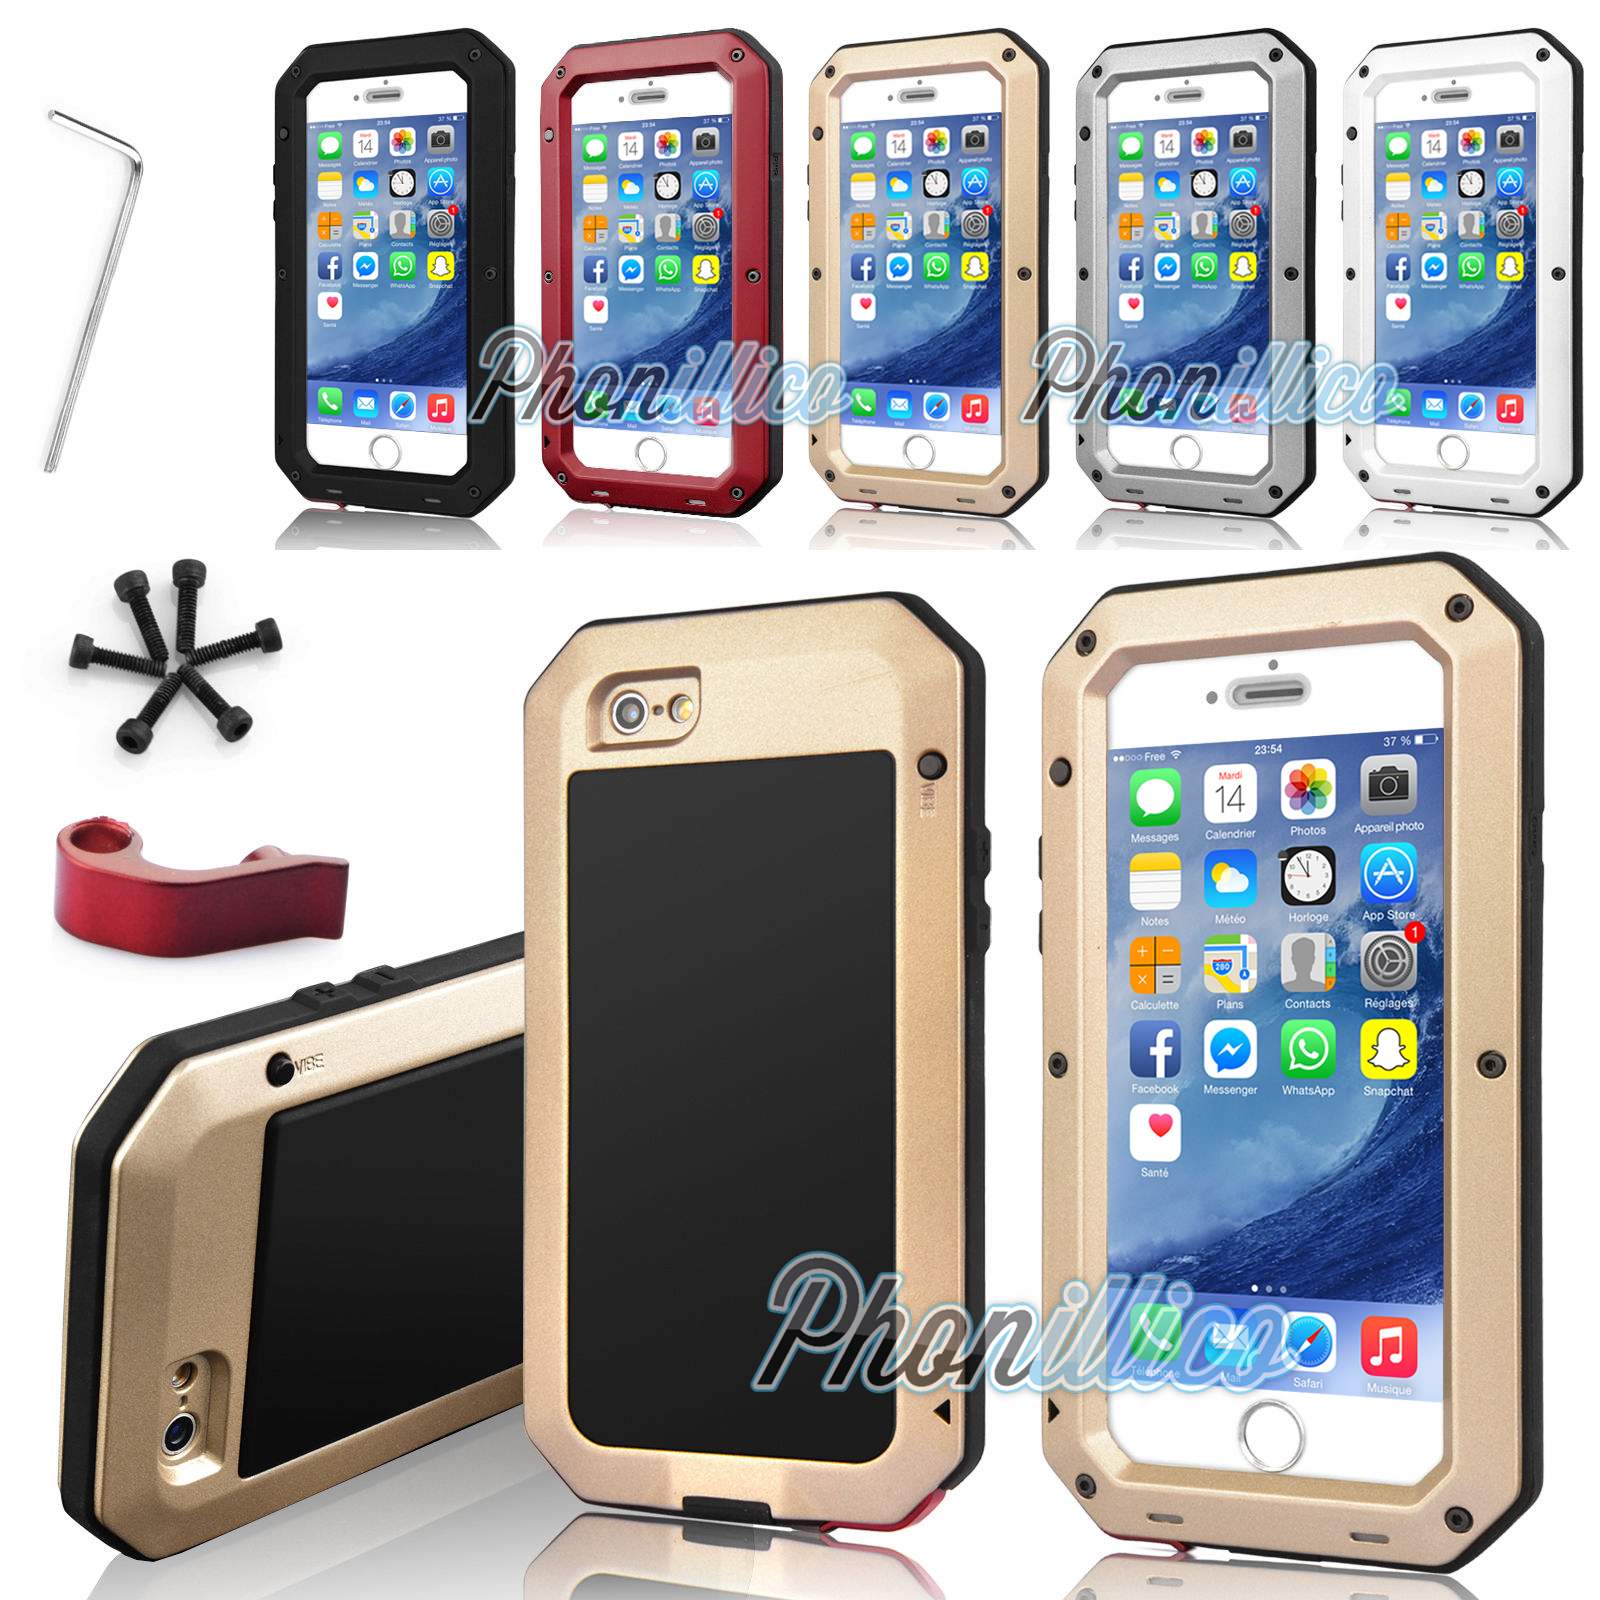 coque epaisse iphone 6 plus